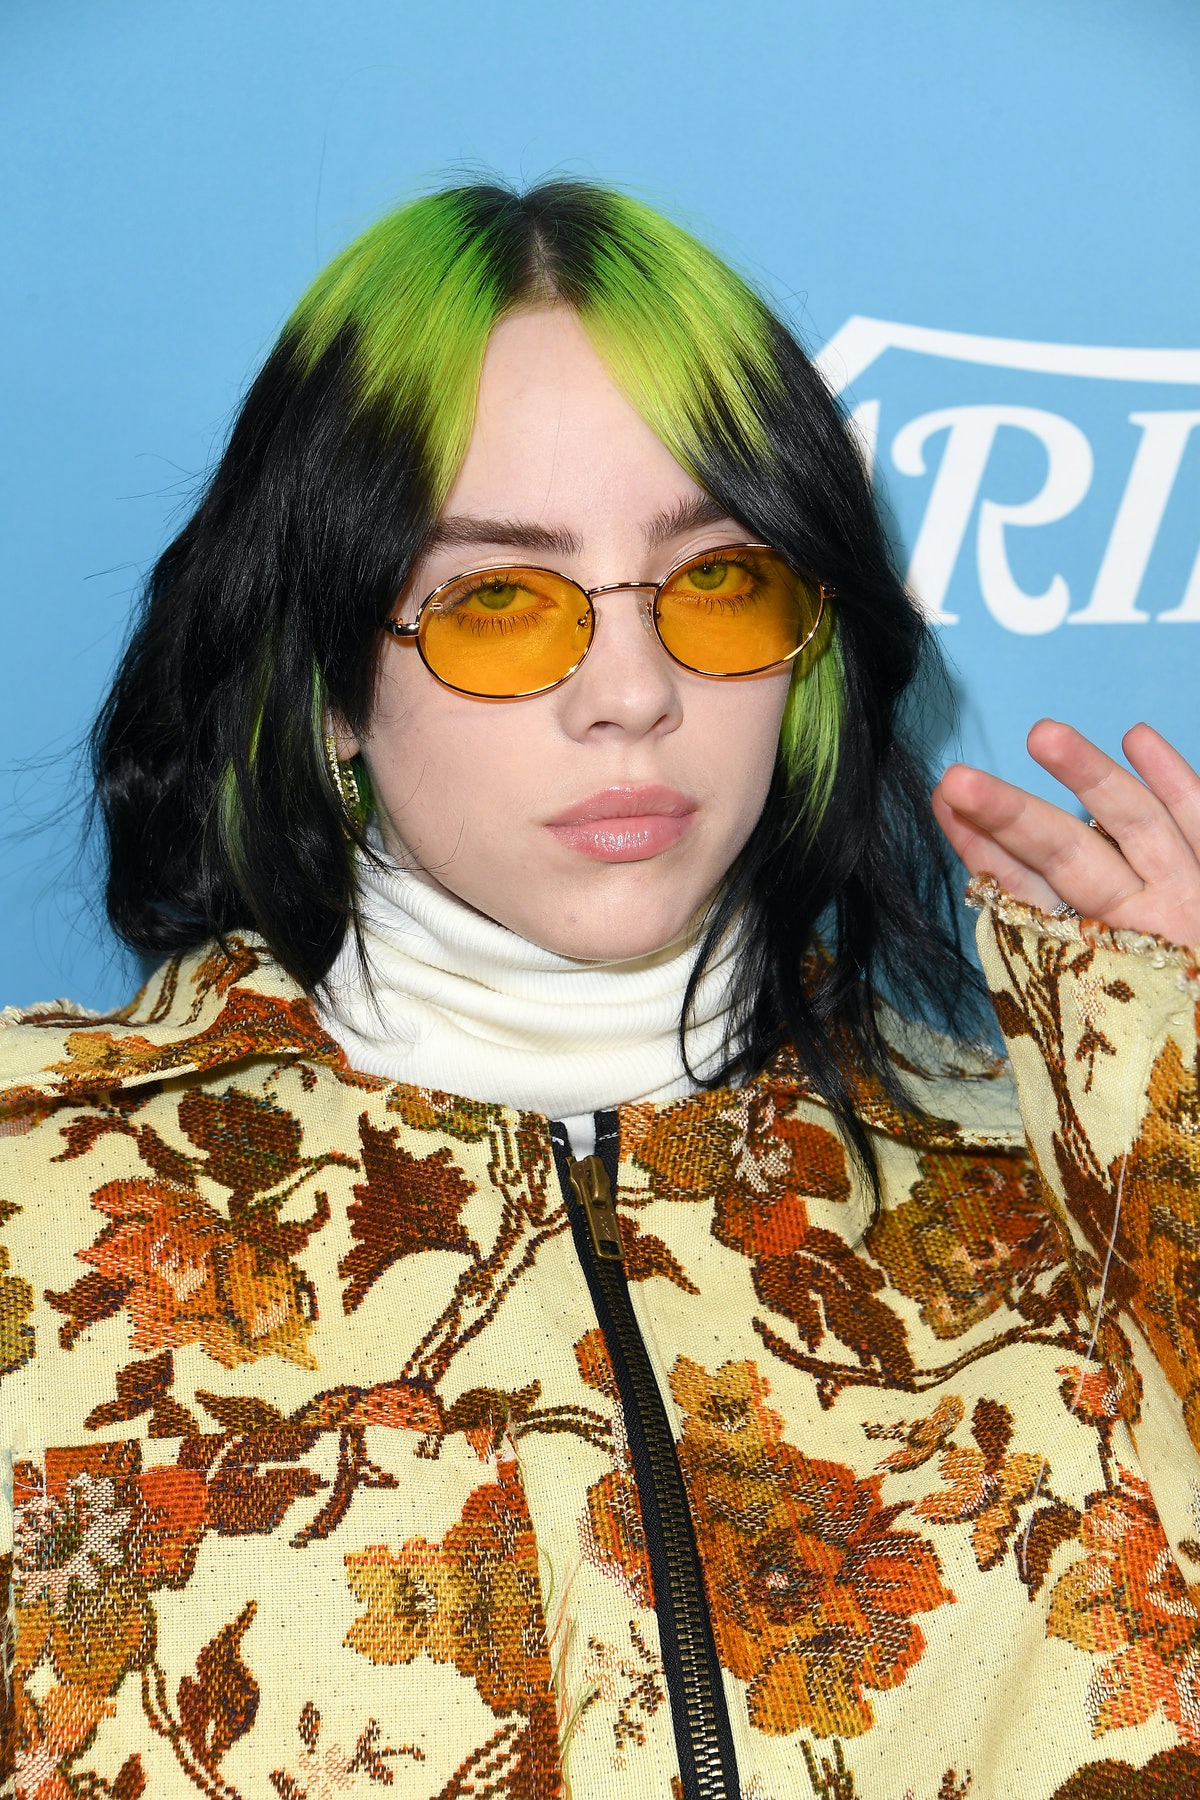 Billie Eilish's reaction to a fan impersonating her in Moscow is hilarious.